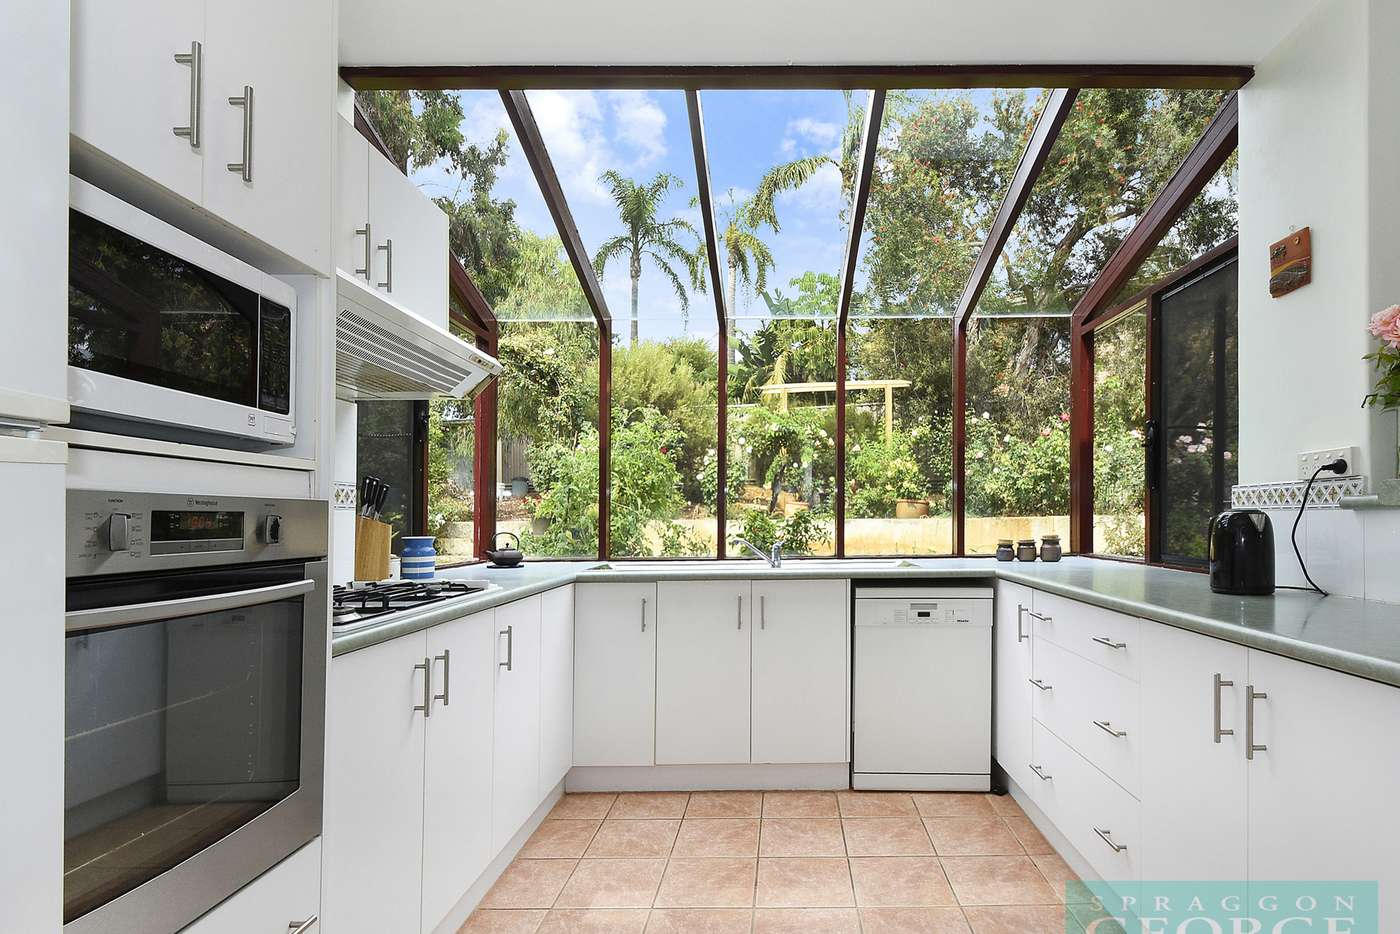 Main view of Homely house listing, 1 Bonsall Place, Carine WA 6020